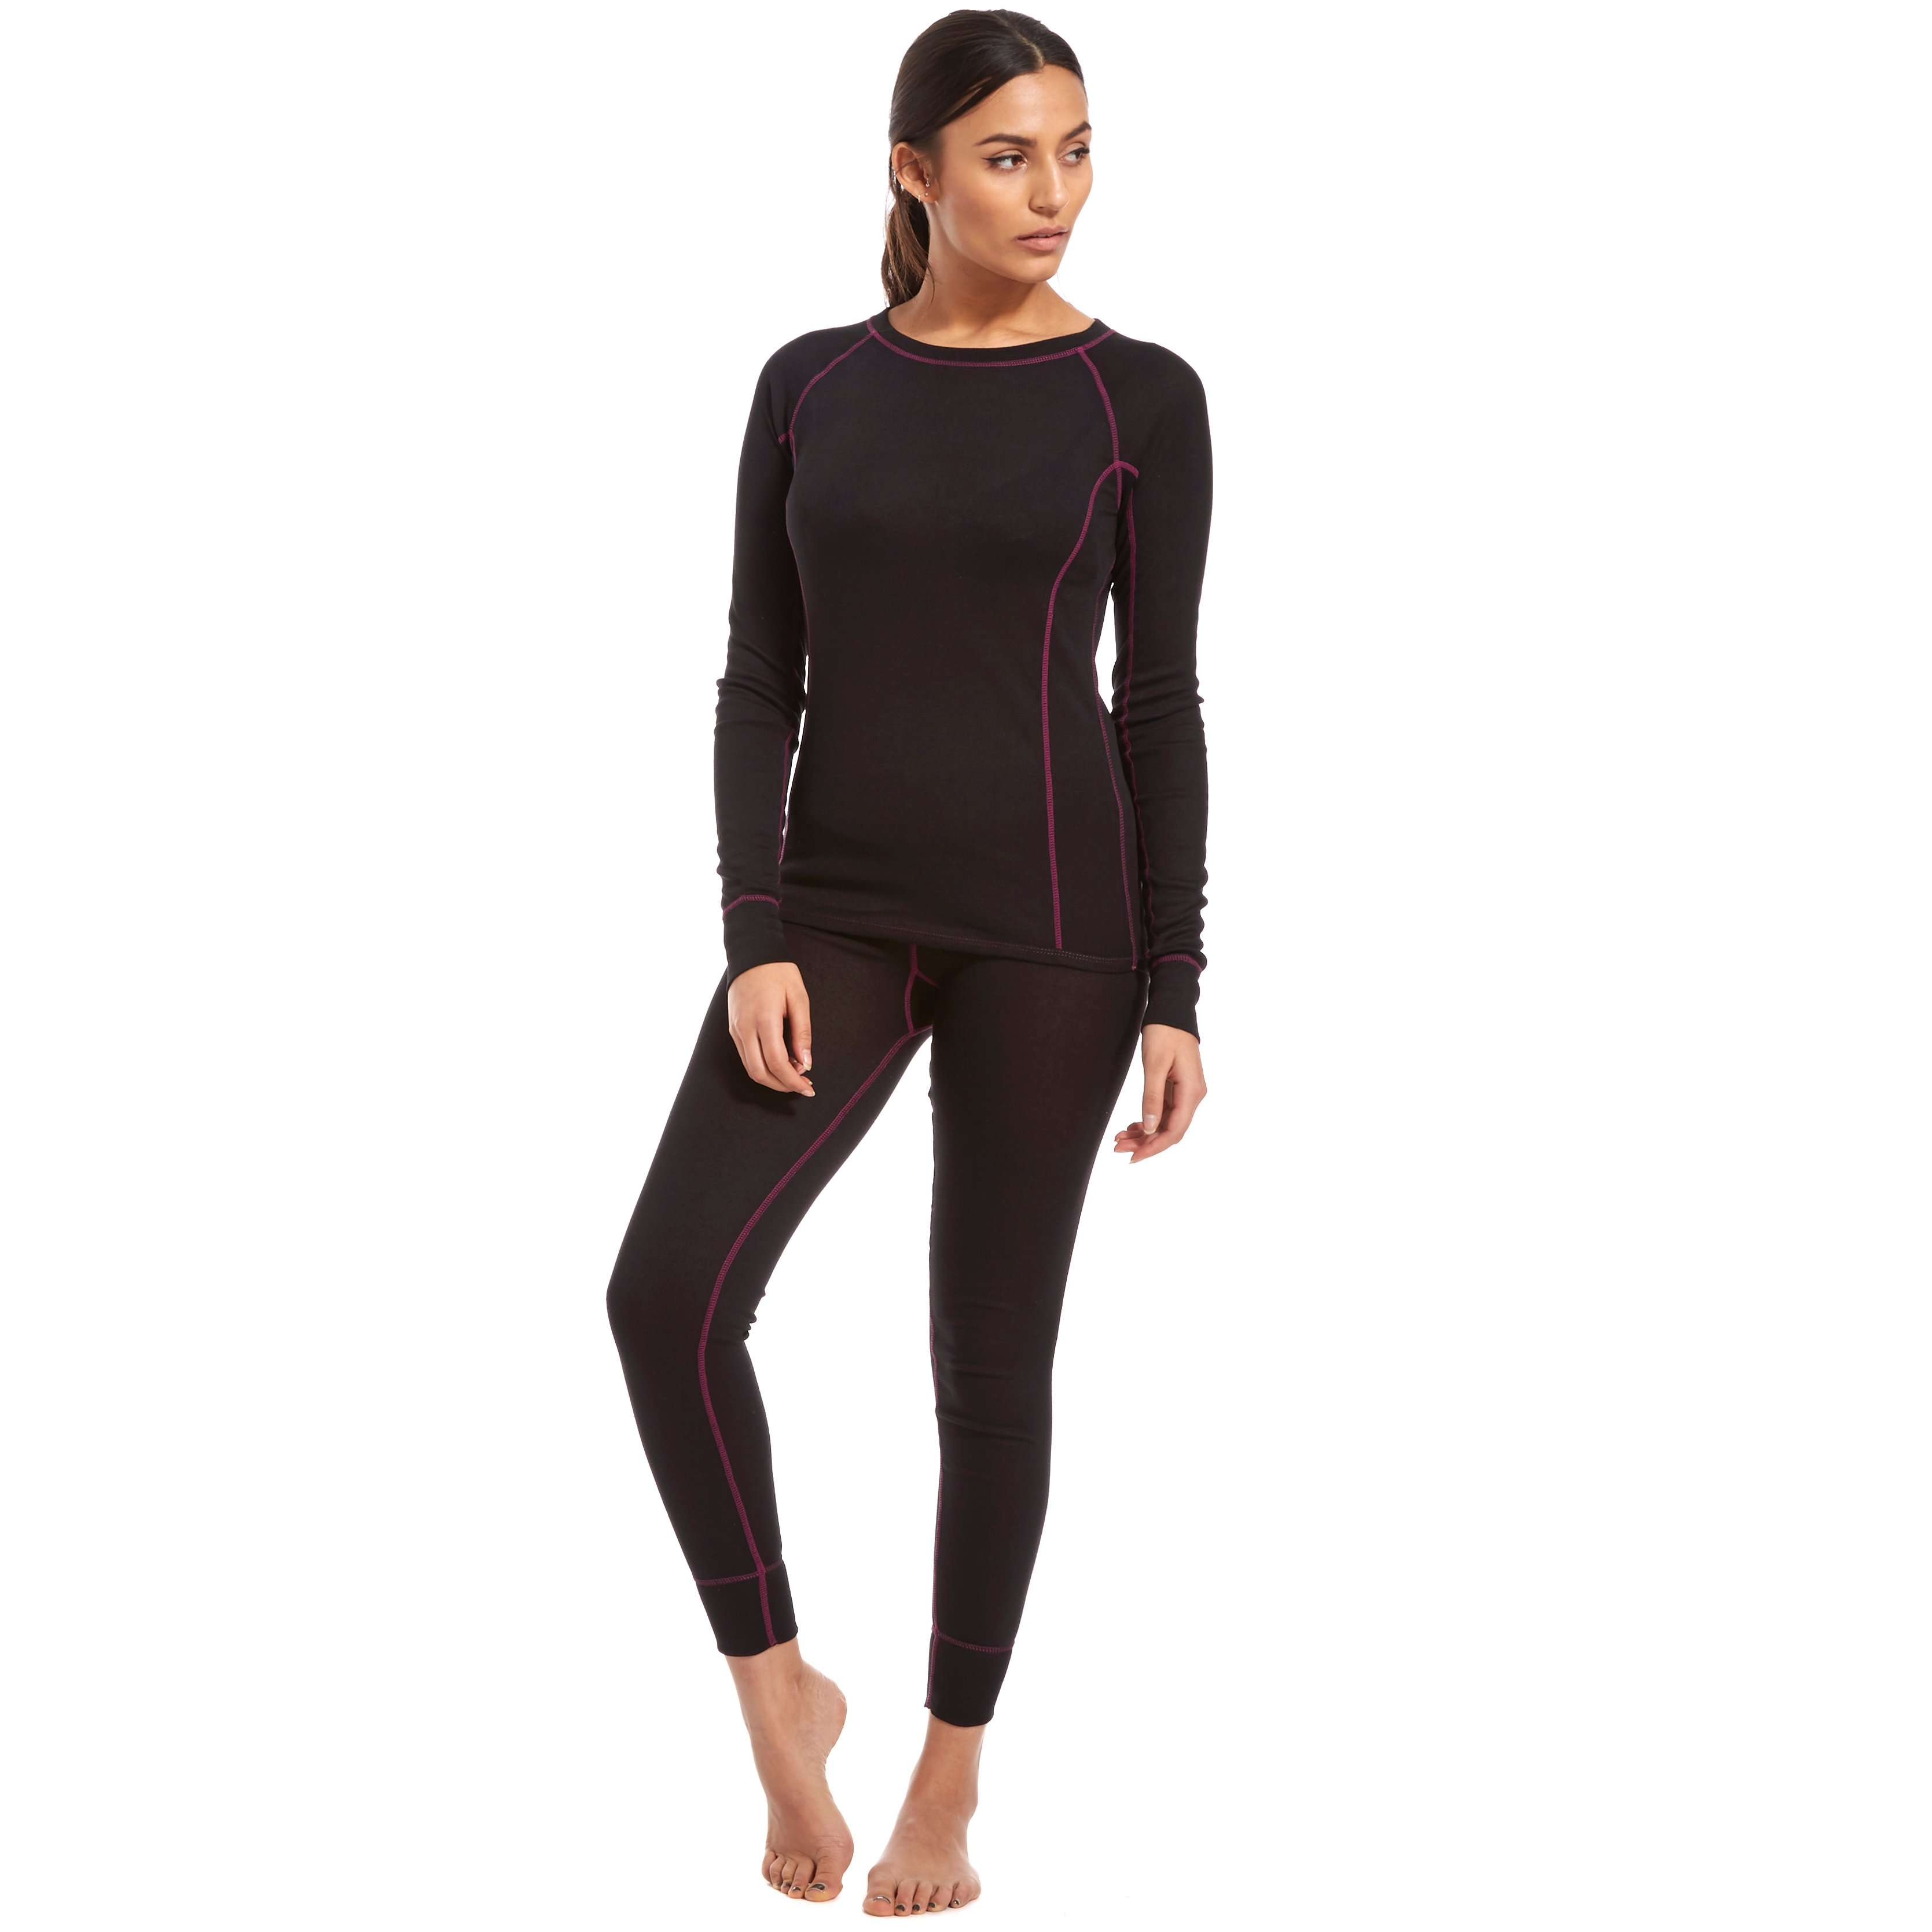 ALPINE Women's Thermal Underwear Set